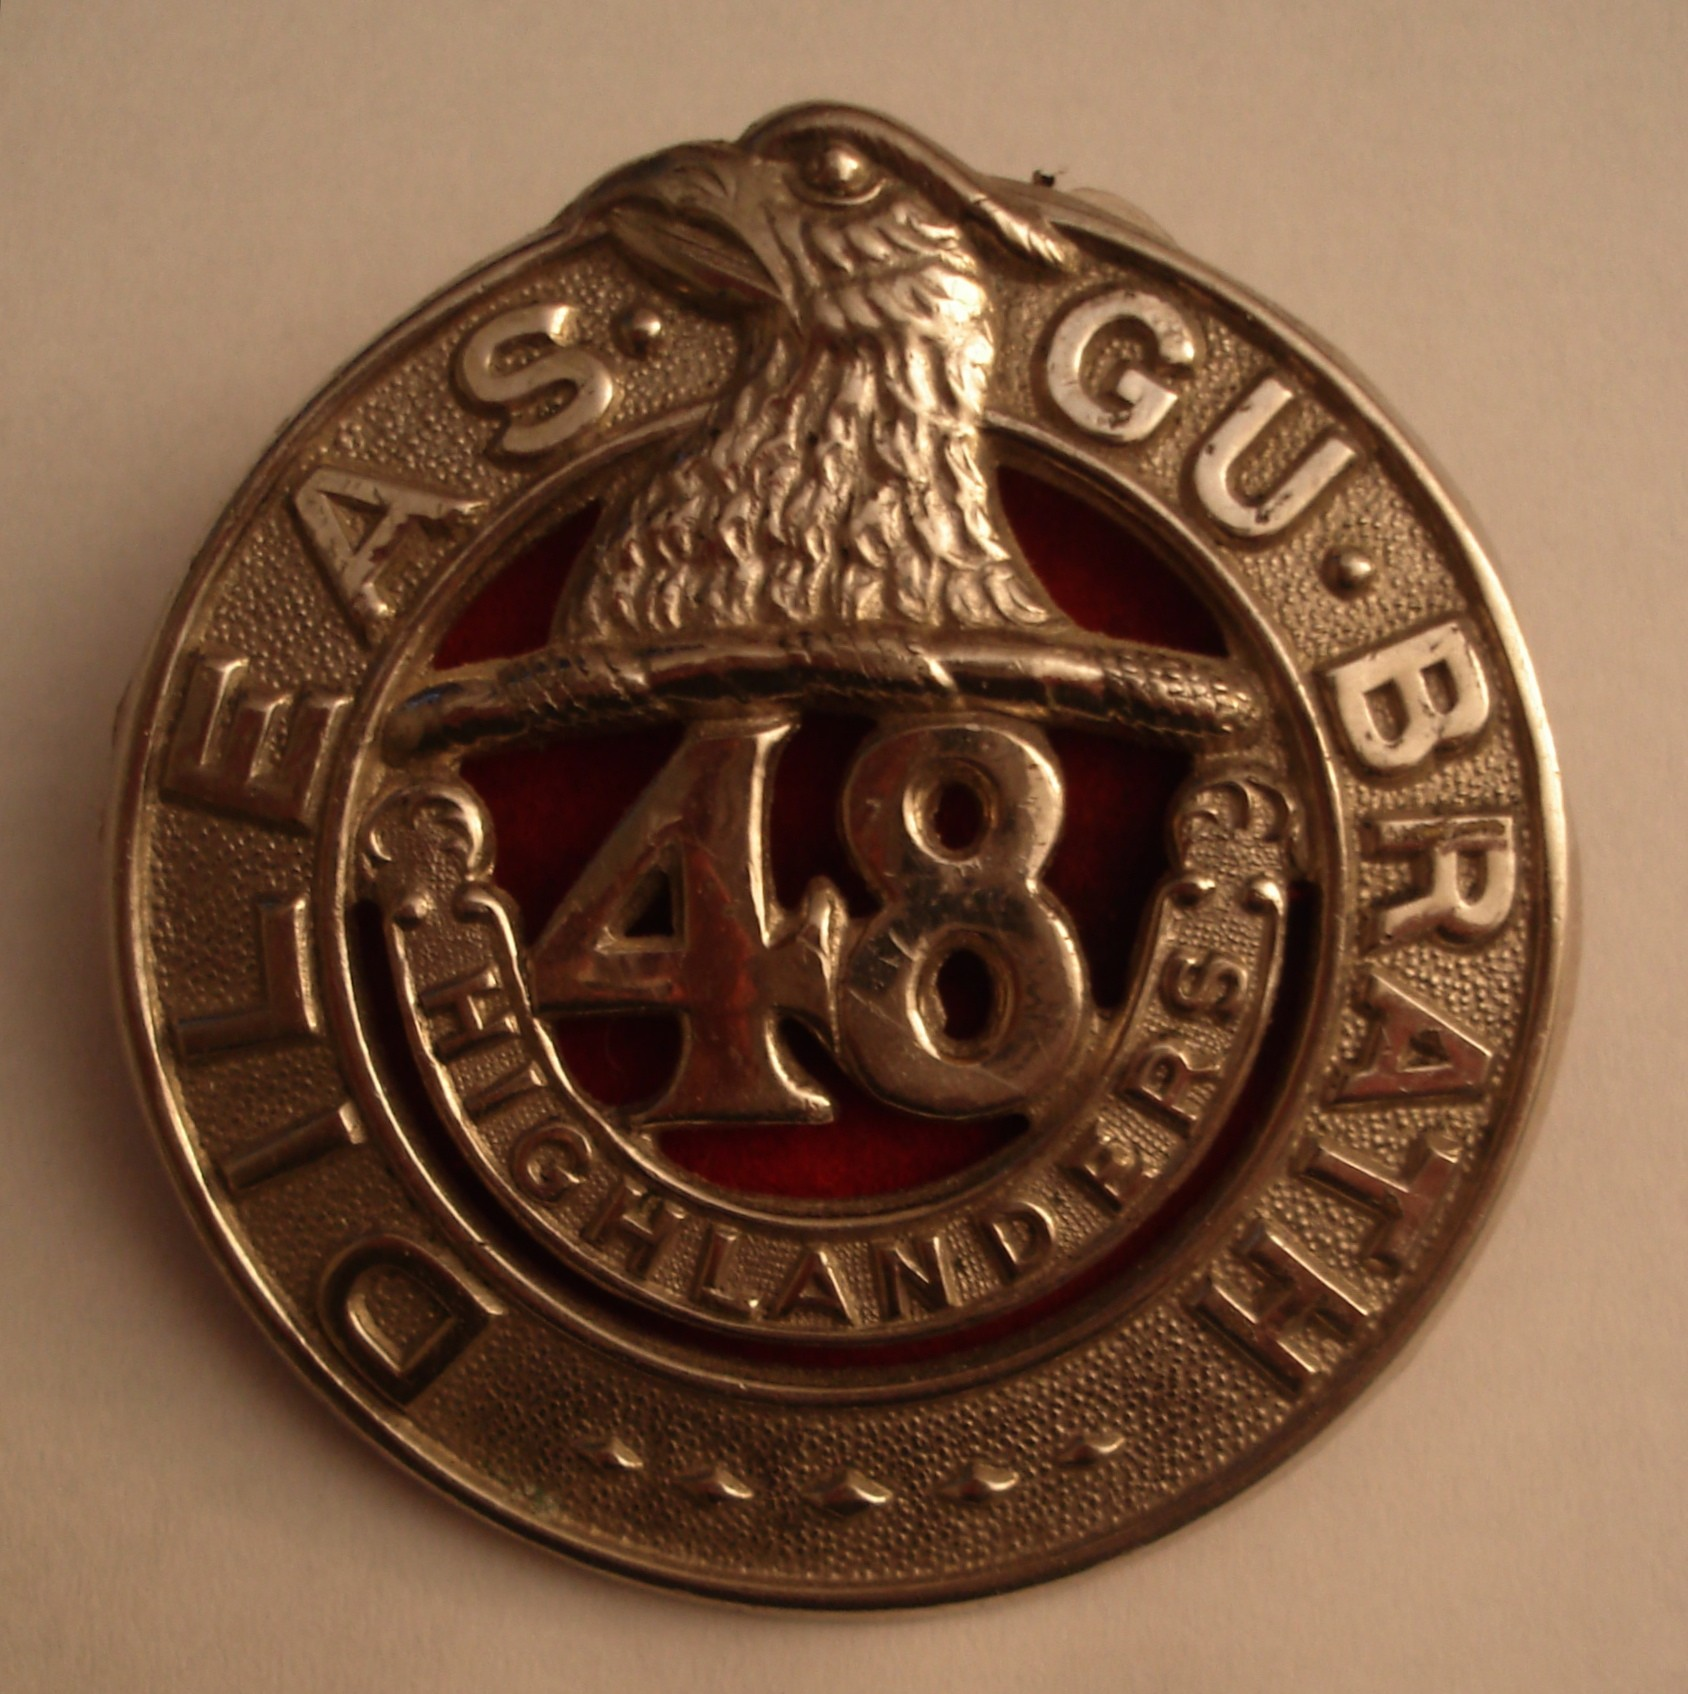 Badge– Former 48th Highlander. In memory of the members of the 48th Highlanders of Canada who went to war and did not come home. Submitted on behalf of the 48th Highlanders Museum, 73 Simcoe St. Toronto, ON M5J 1W9 Submitted for the project Operation: Picture Me.